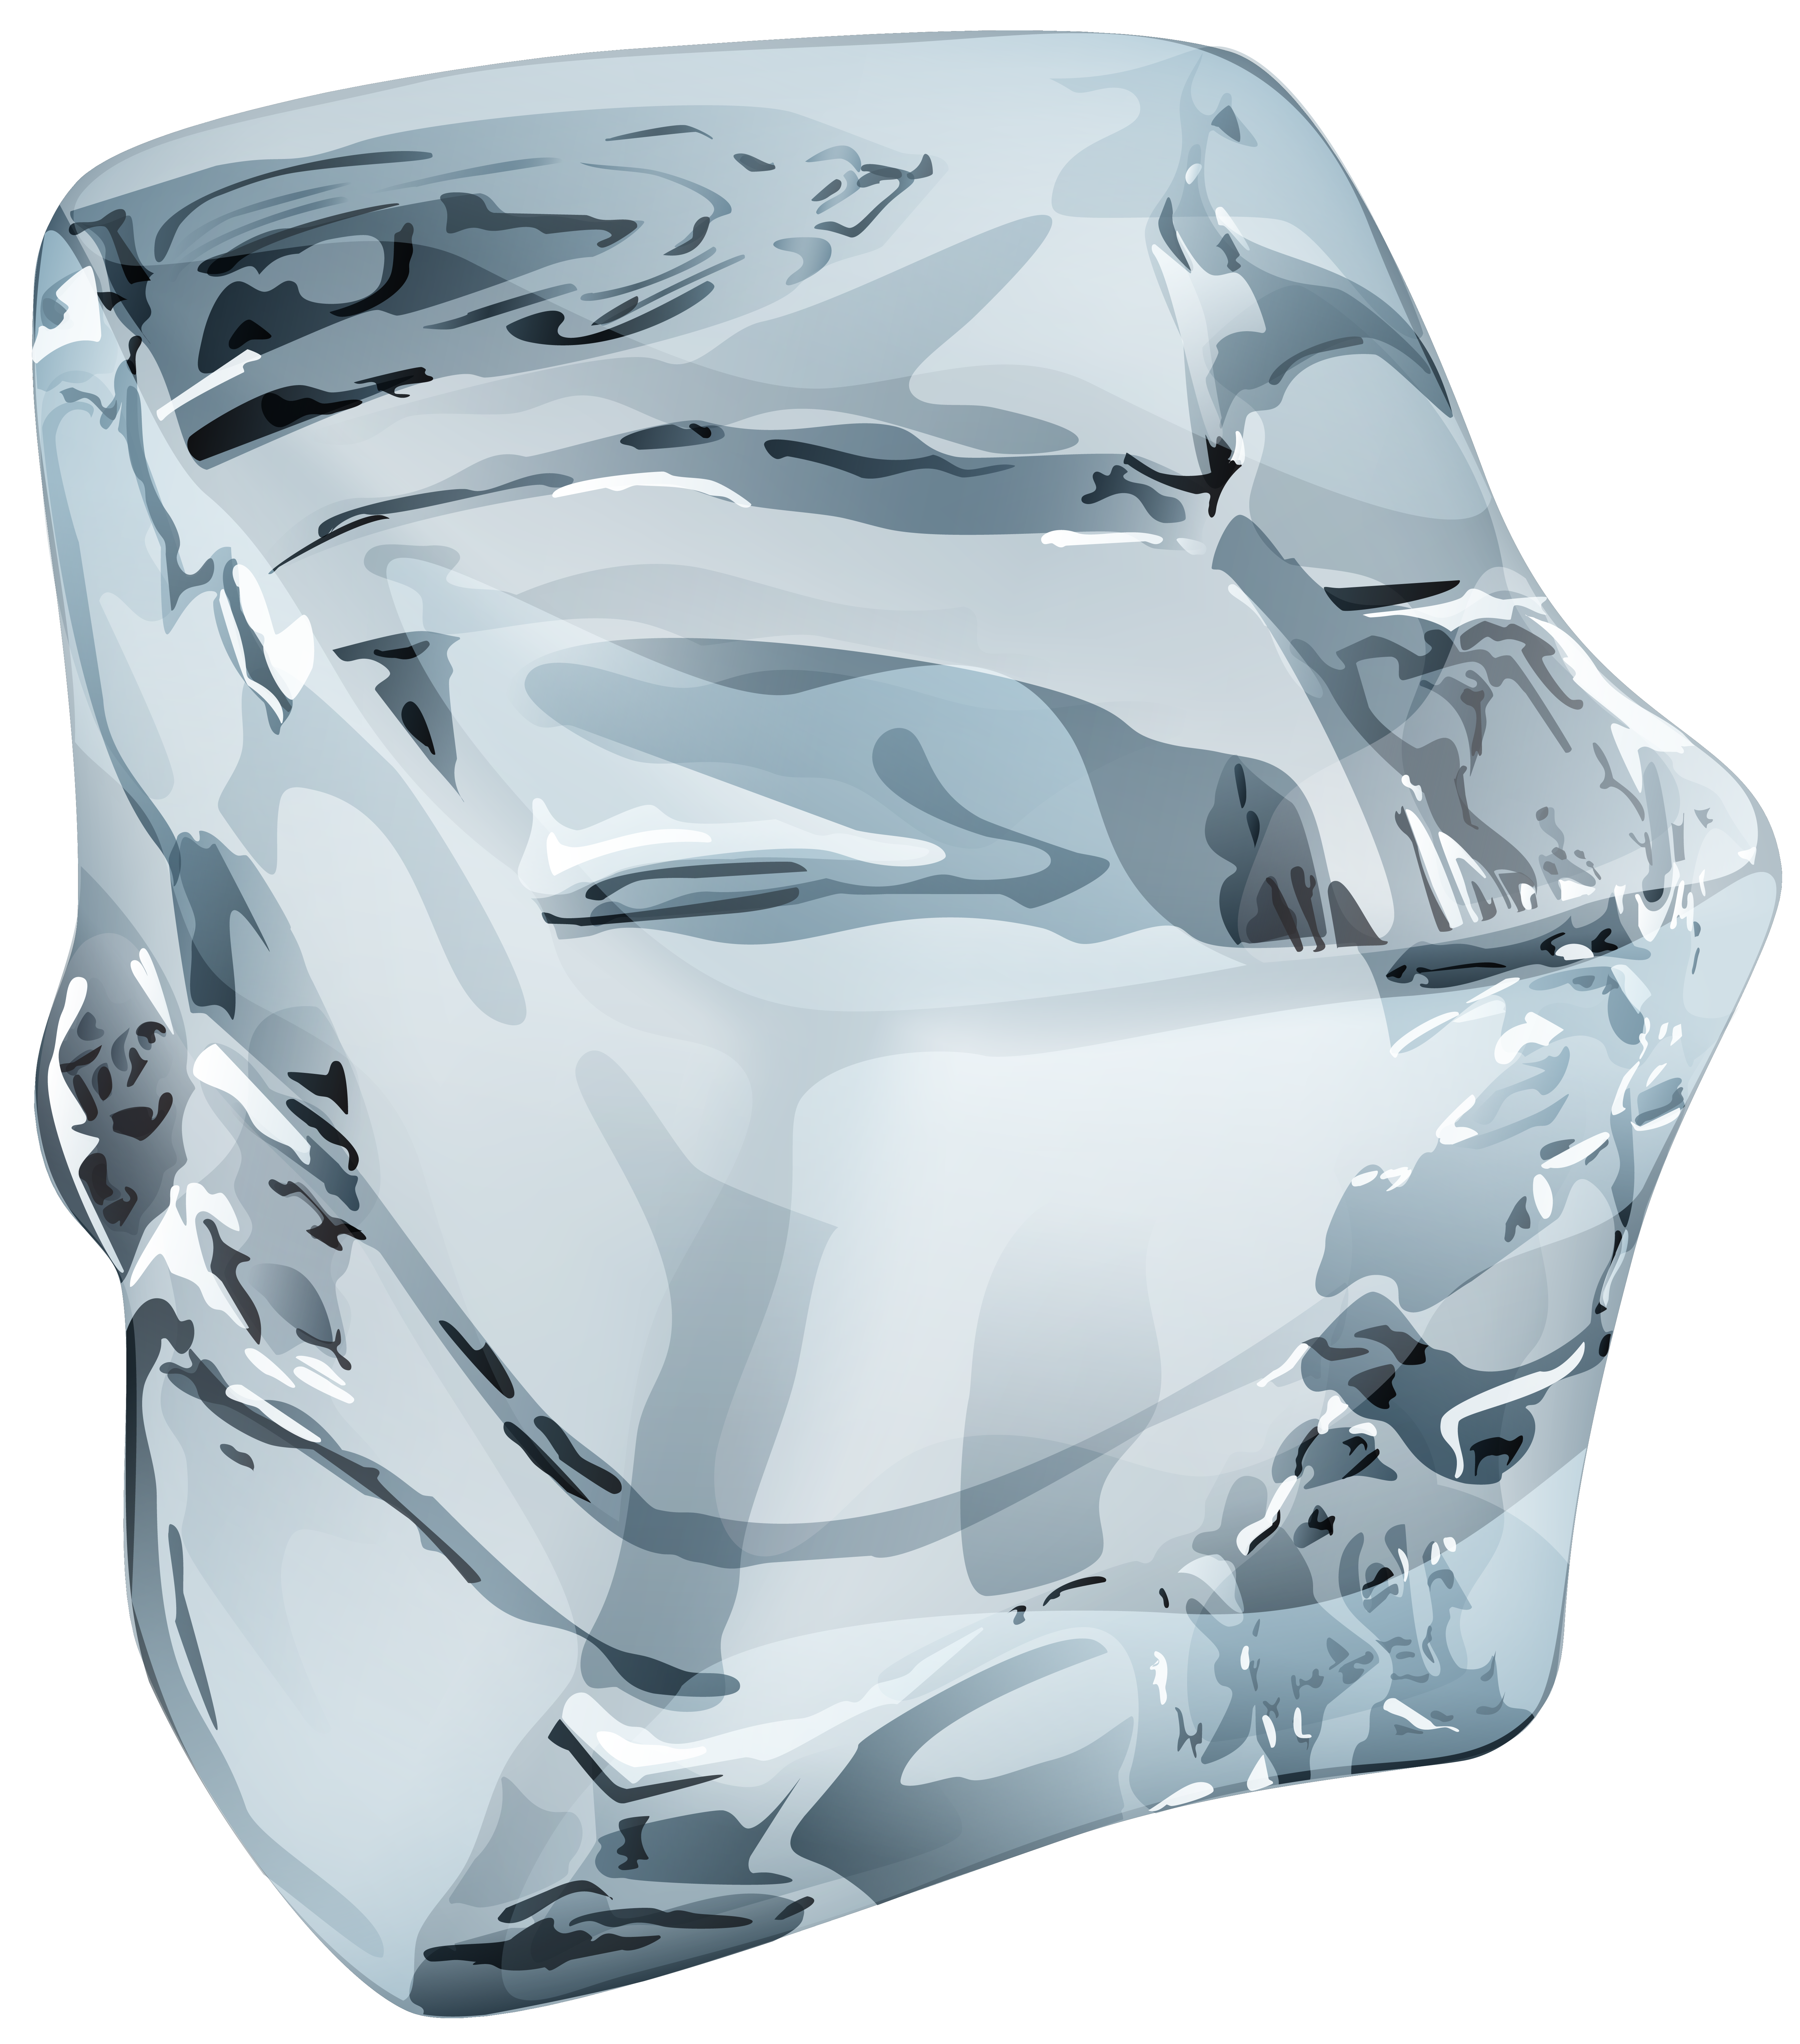 Cube png clip art. Ice clipart transparent background